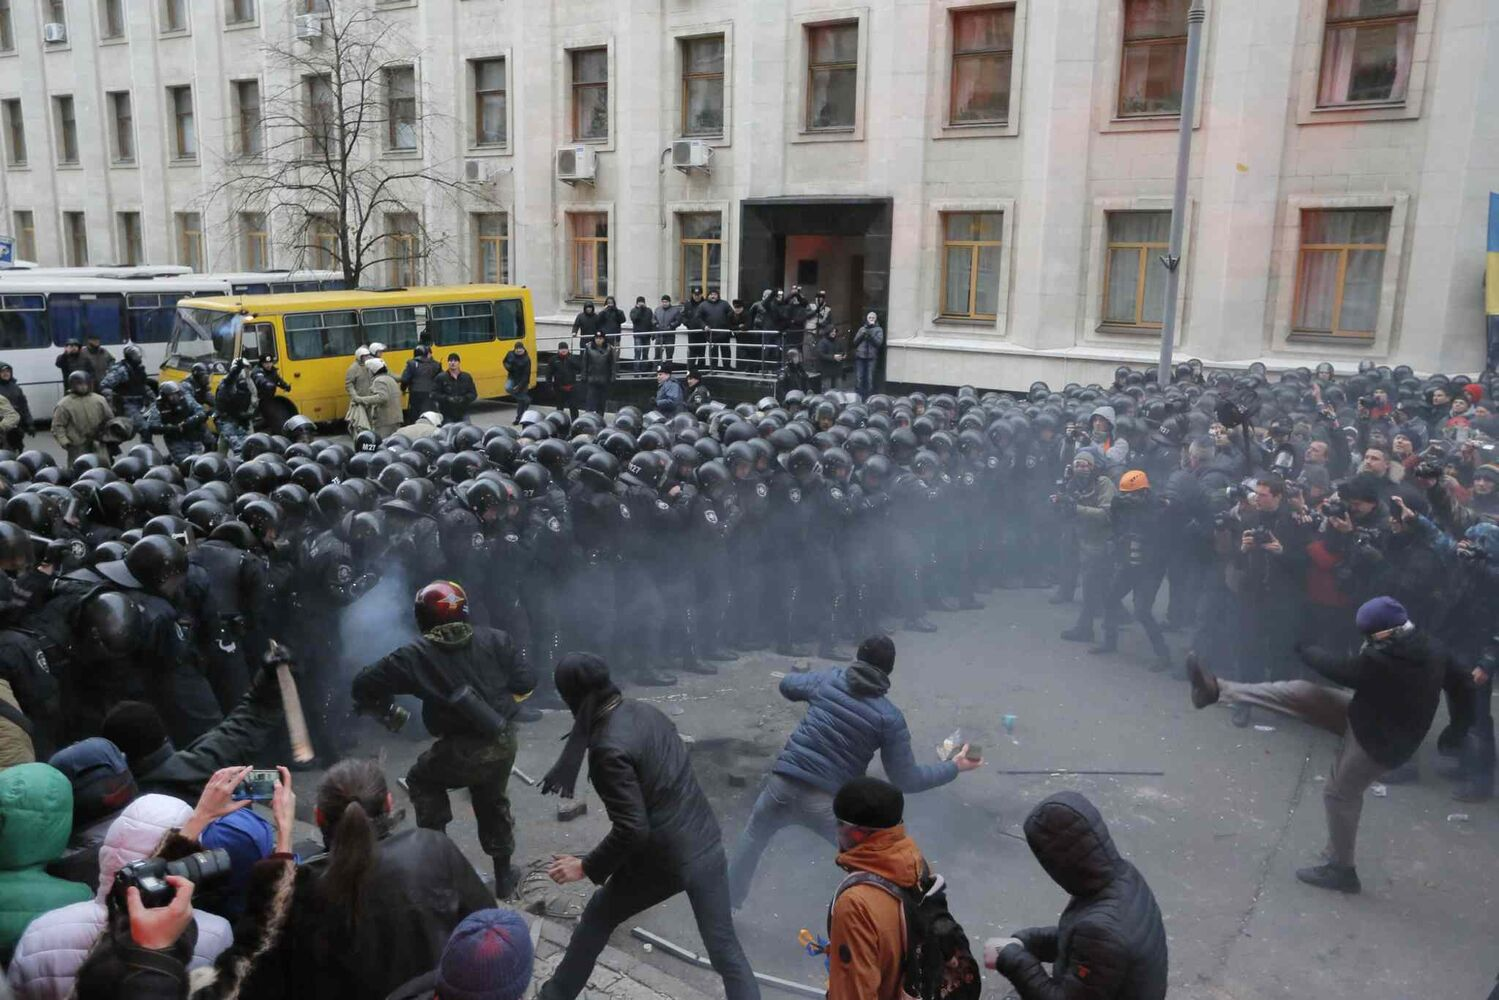 Protesters clash with police at the presidential office in Kiev, Ukraine, on Sunday, Dec. 1, 2013. As many as 100,000 demonstrators chased away police to rally in the center of Ukraine's capital on Sunday, defying a government ban on protests on Independence Square, in the biggest show of anger over the president's refusal to sign an agreement with the European Union.